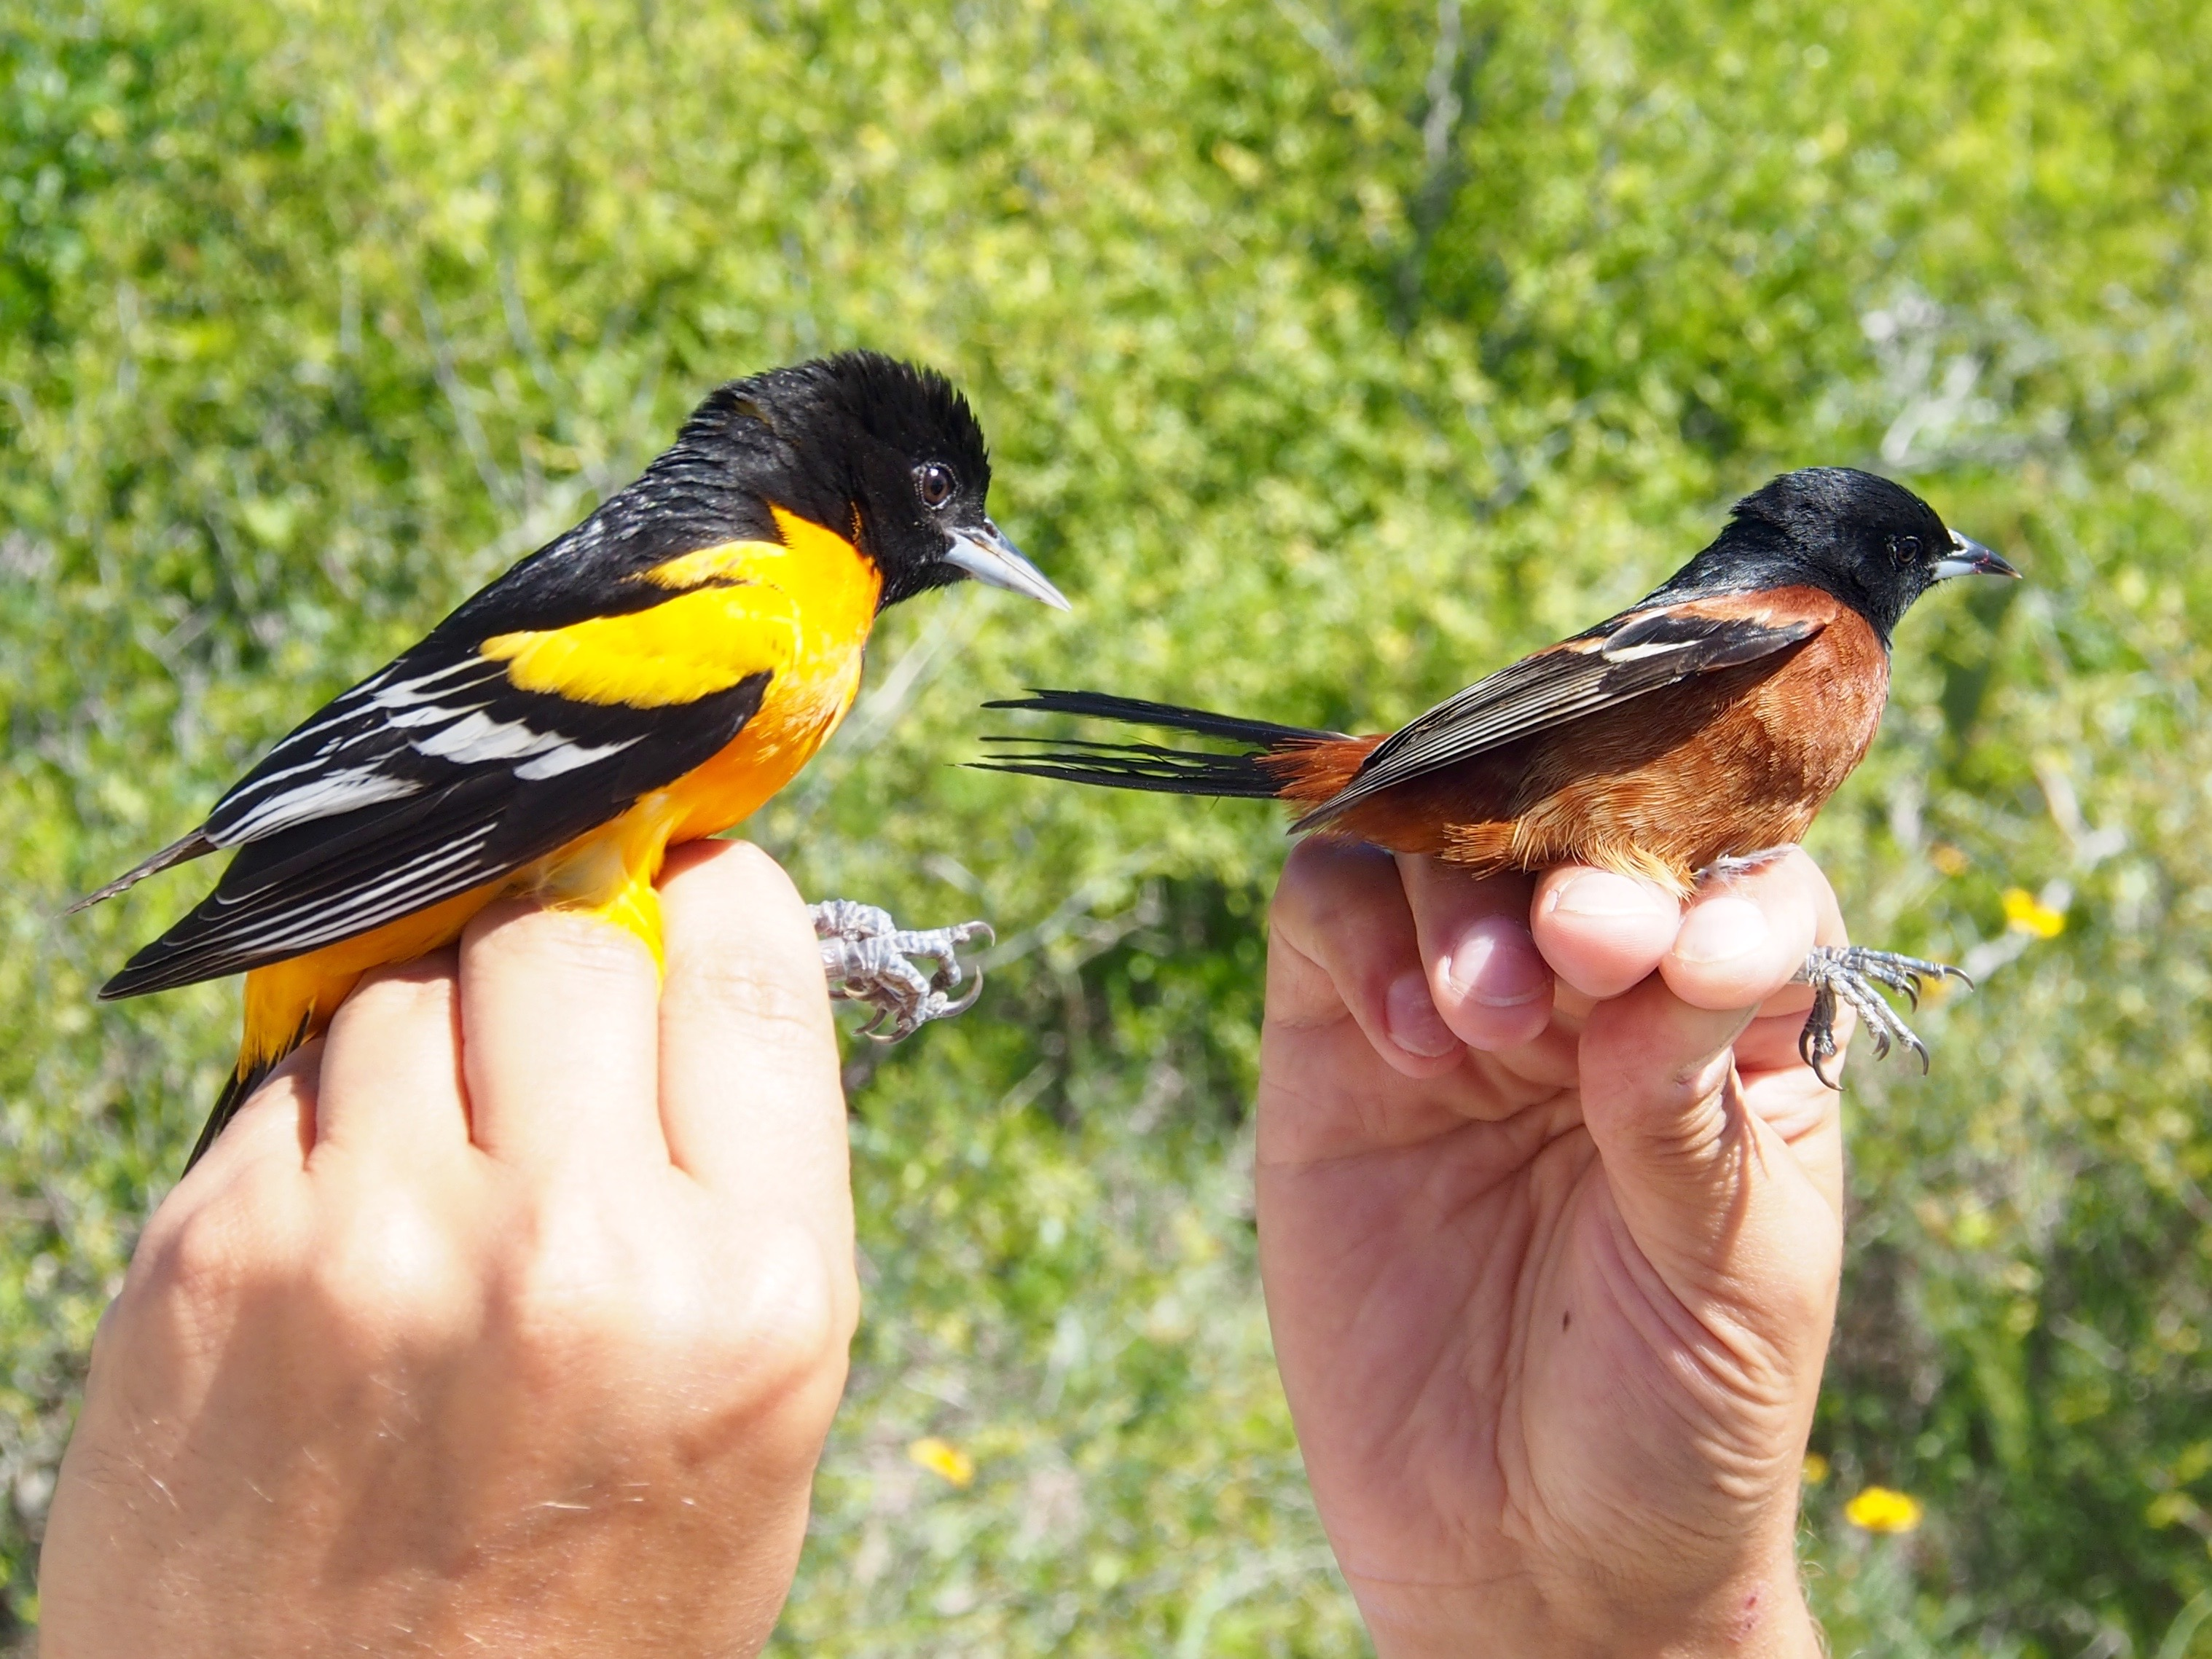 A Baltimore oriole and an orchard oriole in the hands of scientists